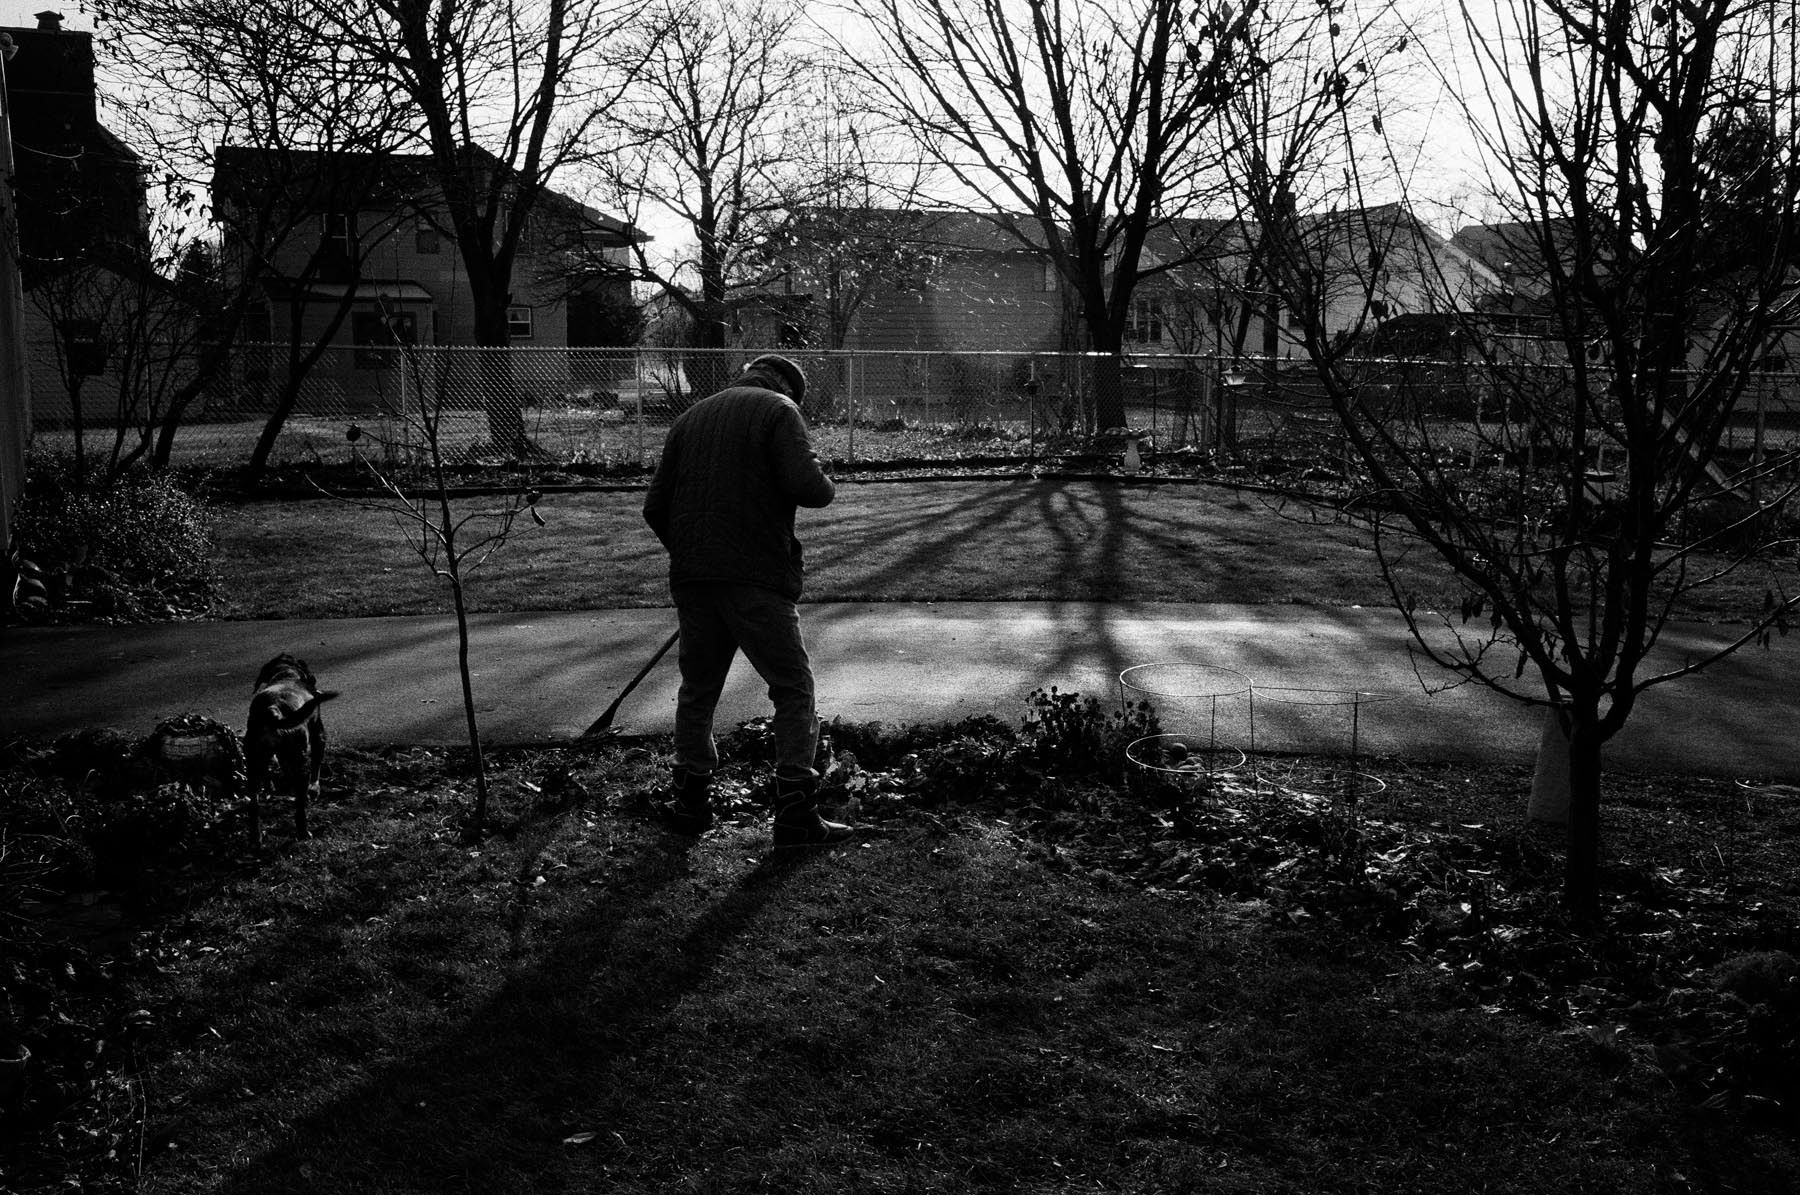 Raking Leaves, Oshkosh, WI, 1991